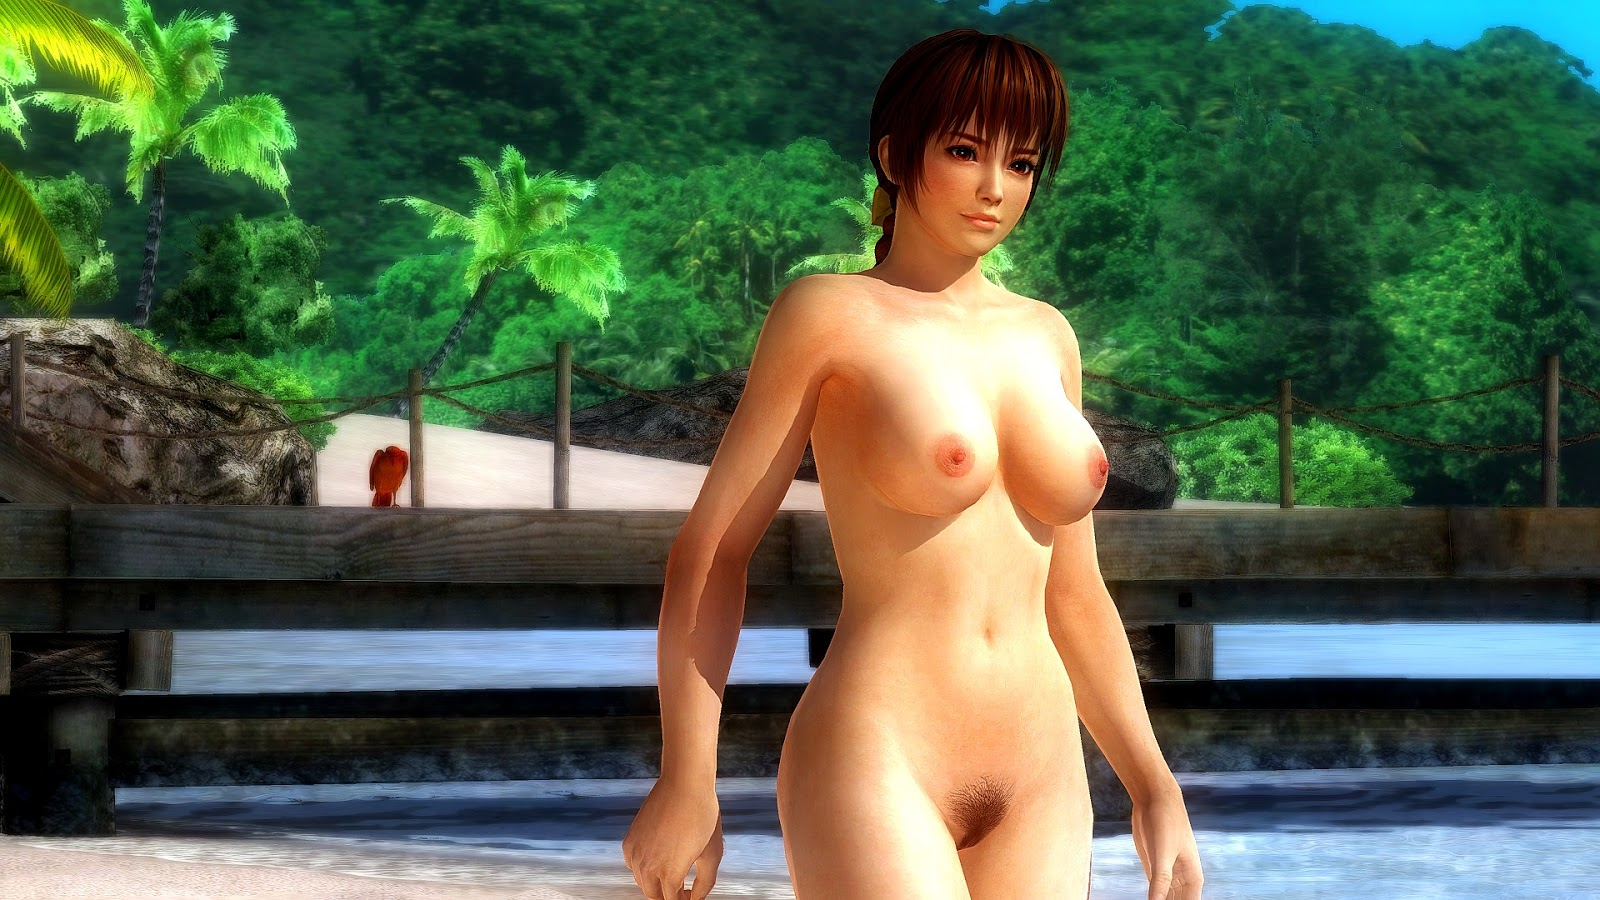 Doa5 nude download adult galleries